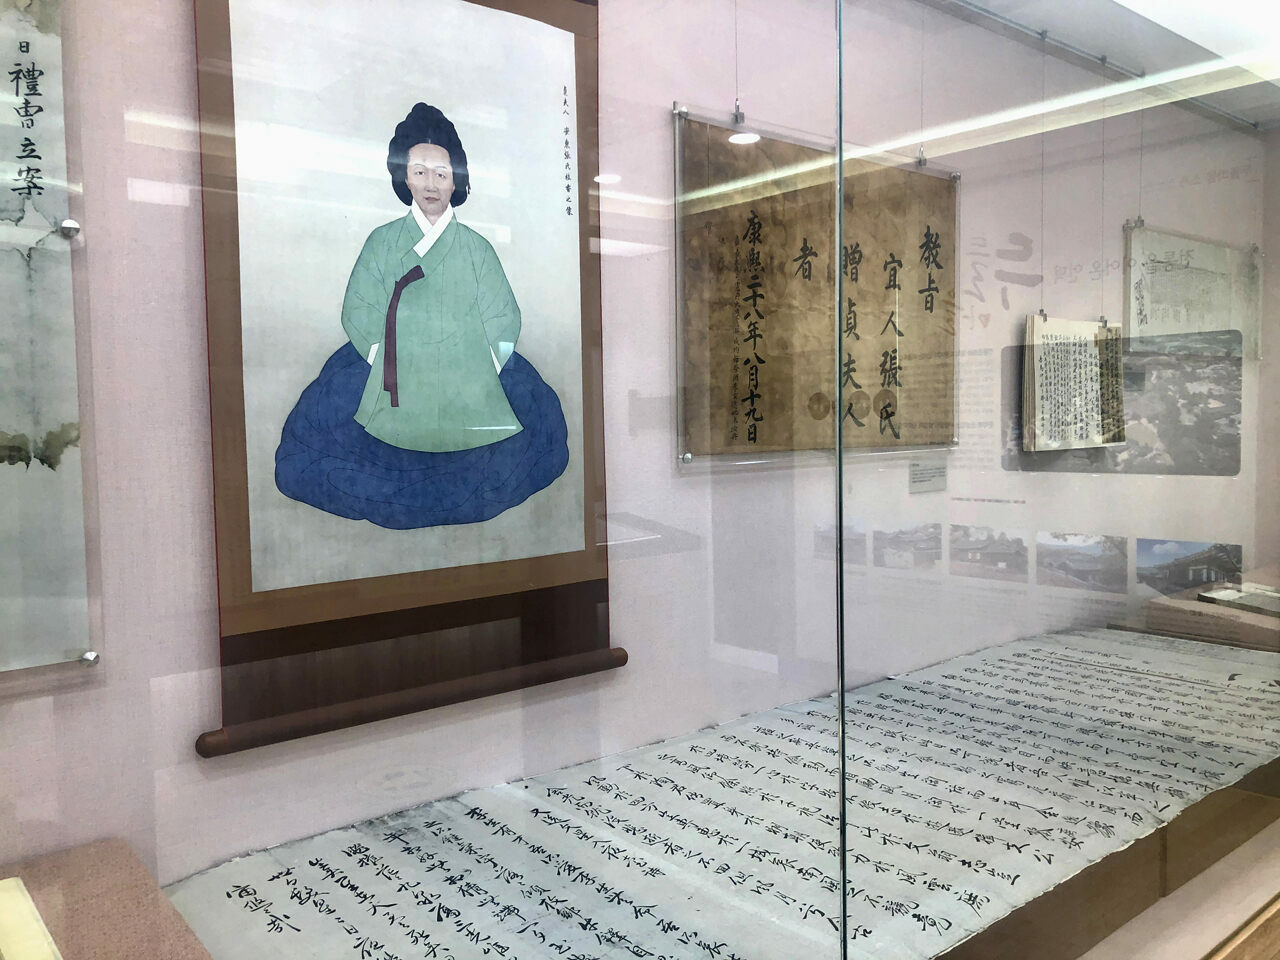 A portrait of Jang Gye-hyang hangs in the Eumsik-Dimibang Exhibition Center.